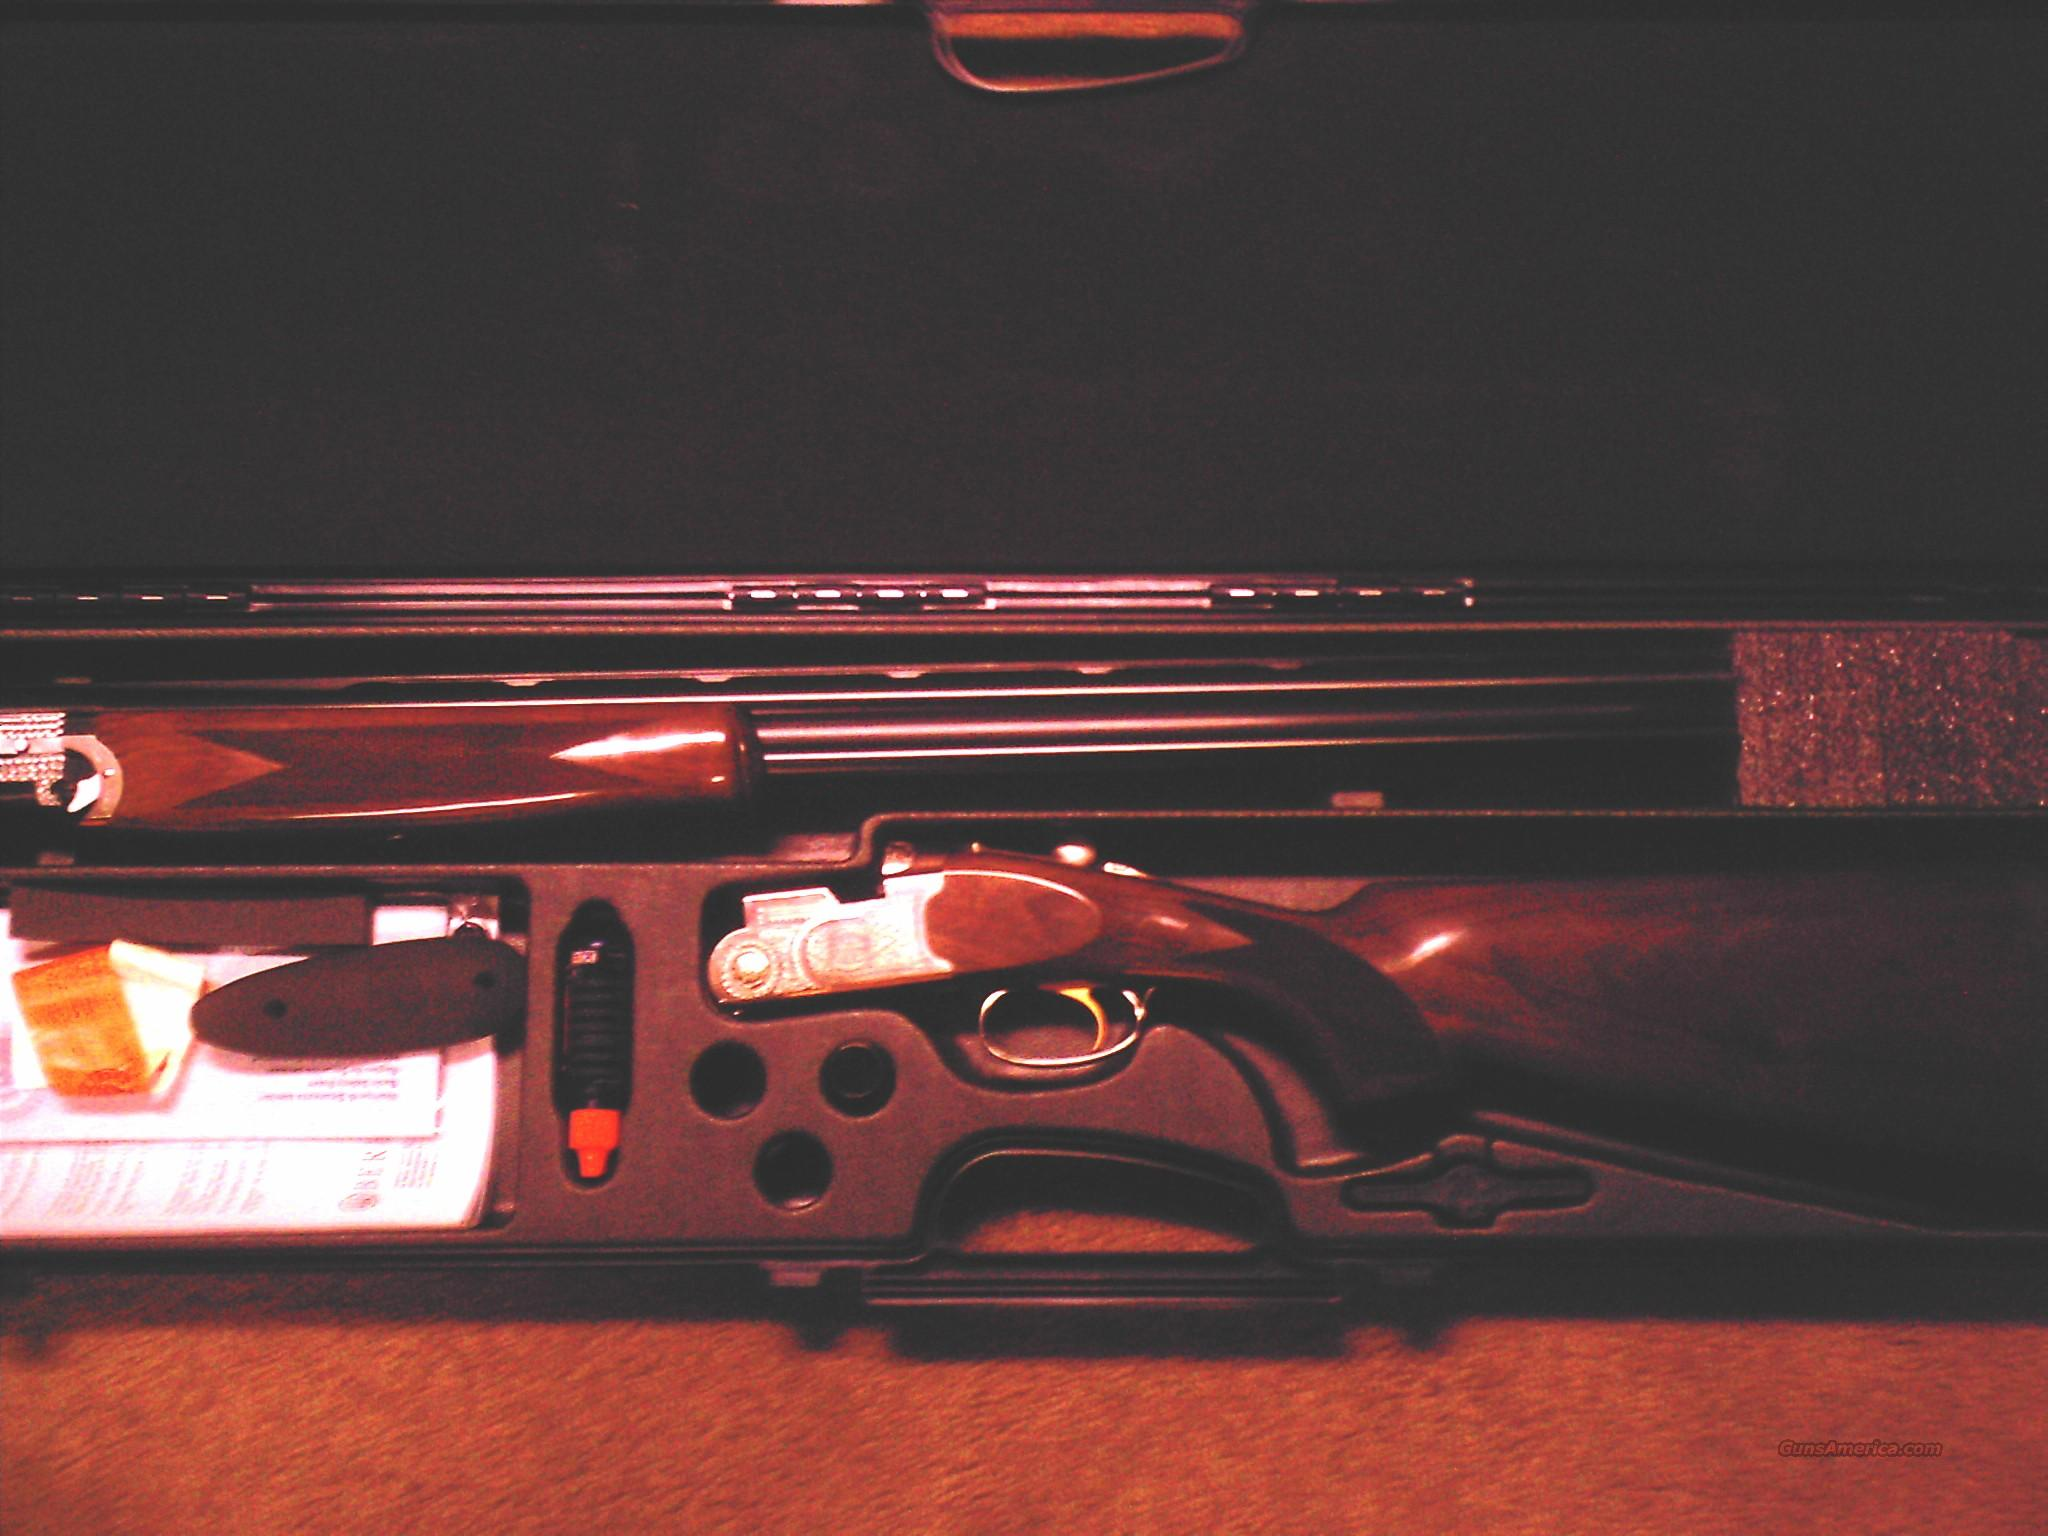 Beretta 686 Silver Pigeon S 12 gauge O/U **REDUCED**  Guns > Shotguns > Beretta Shotguns > O/U > Hunting